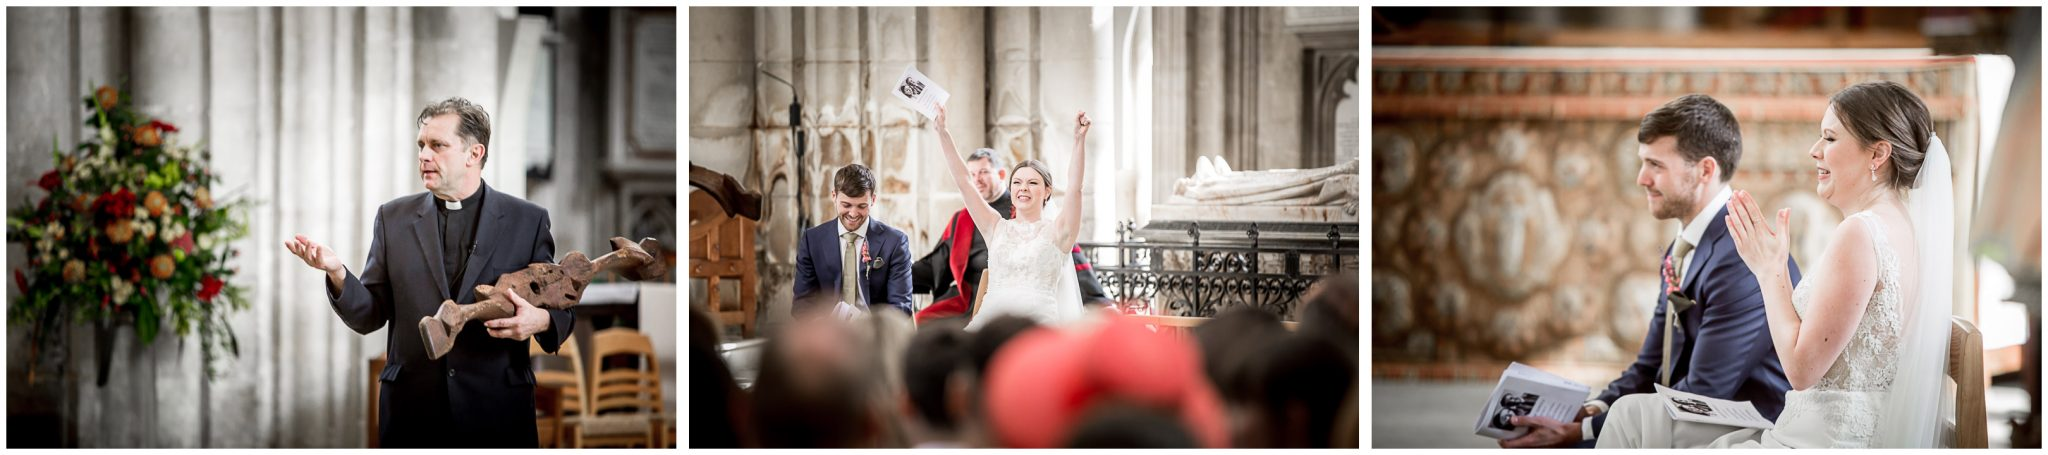 winchester cathedral wedding photography couple during service